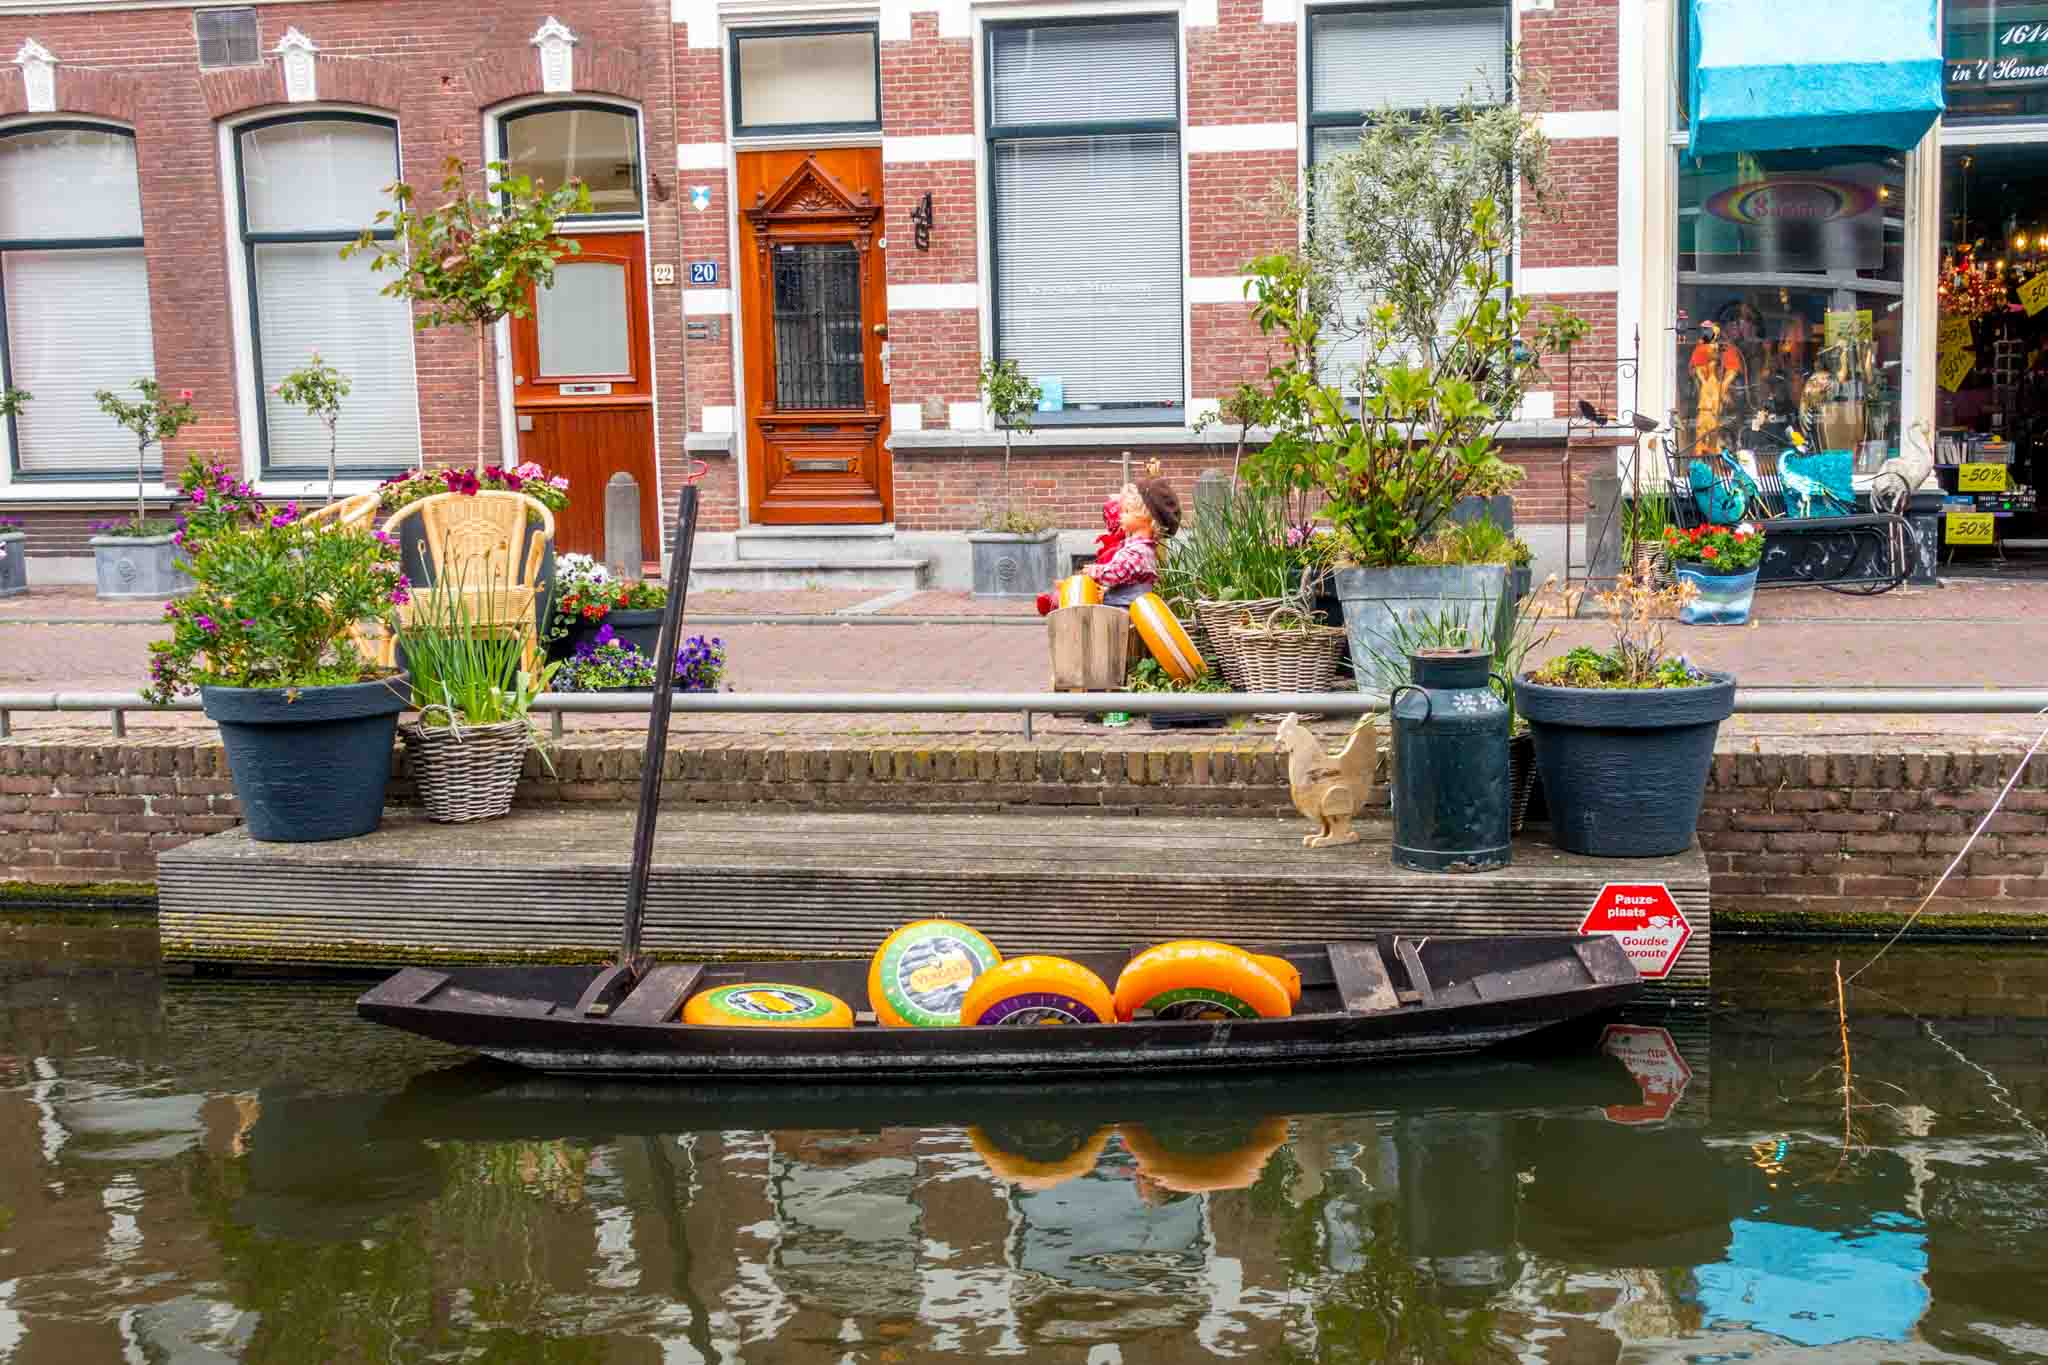 Cheese seems to be everywhere in Gouda Netherlands, including in boats in the canals